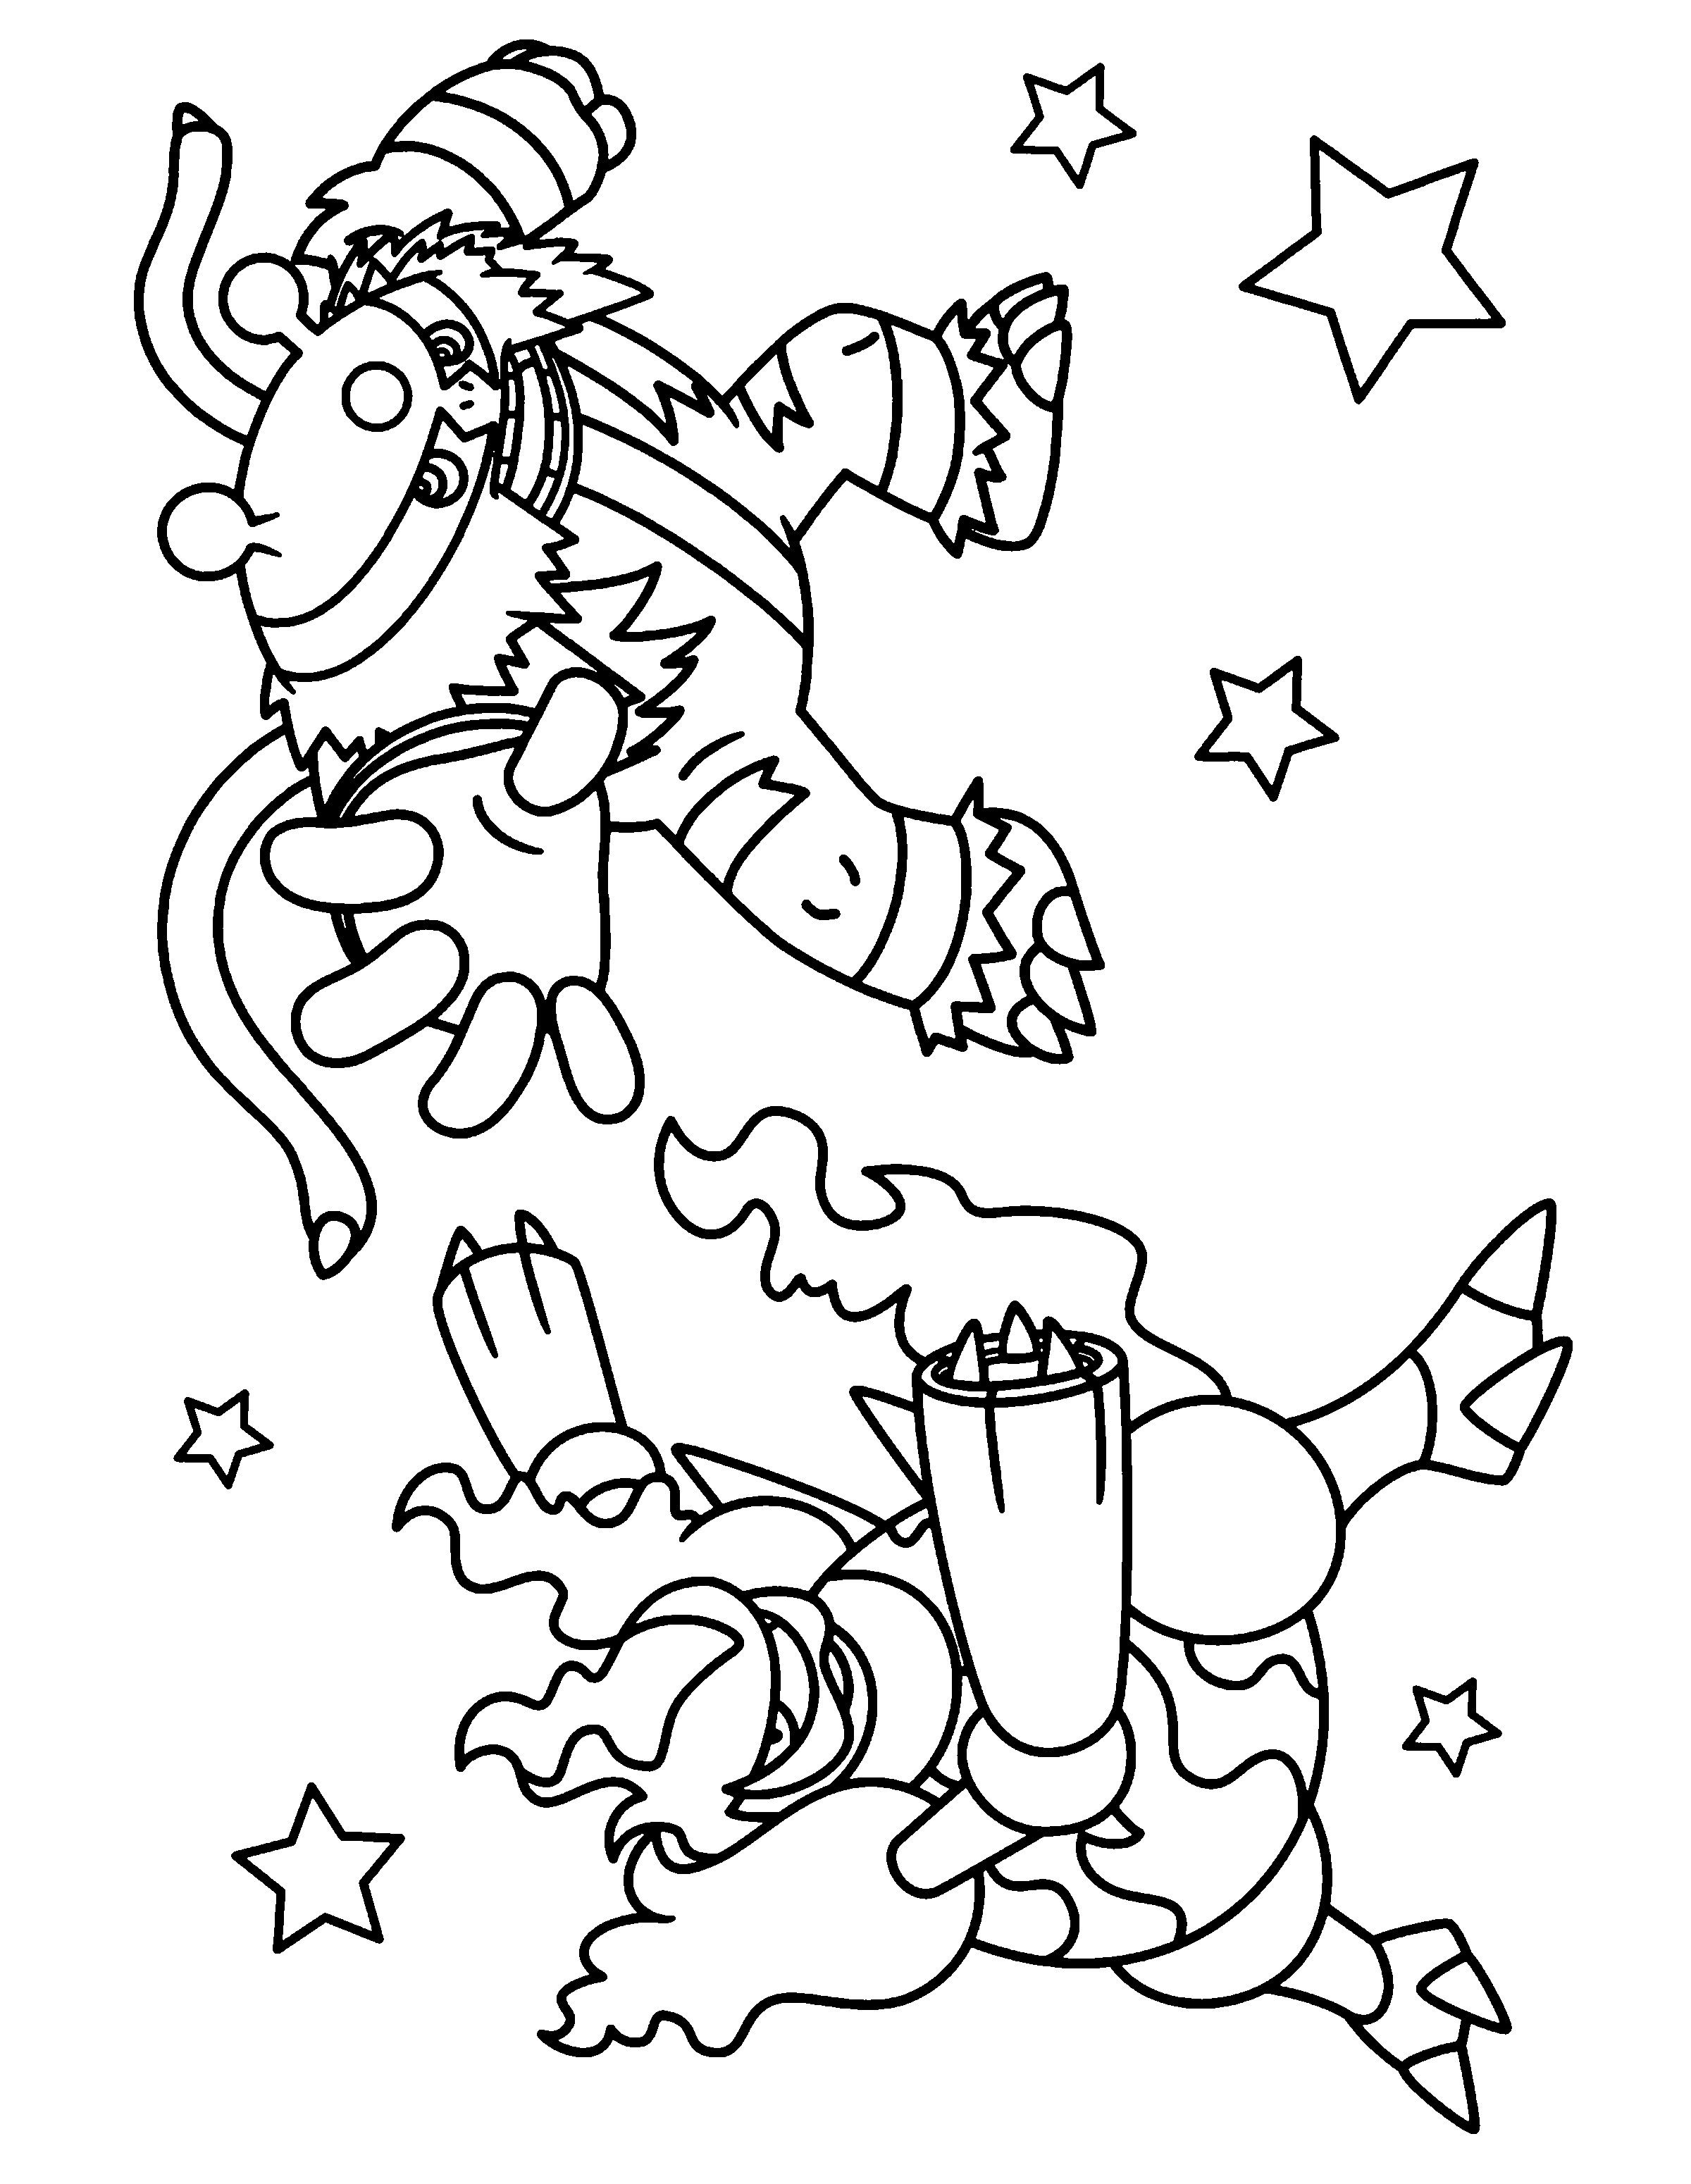 Pokemon Electivire Coloring Pages From the thousands of